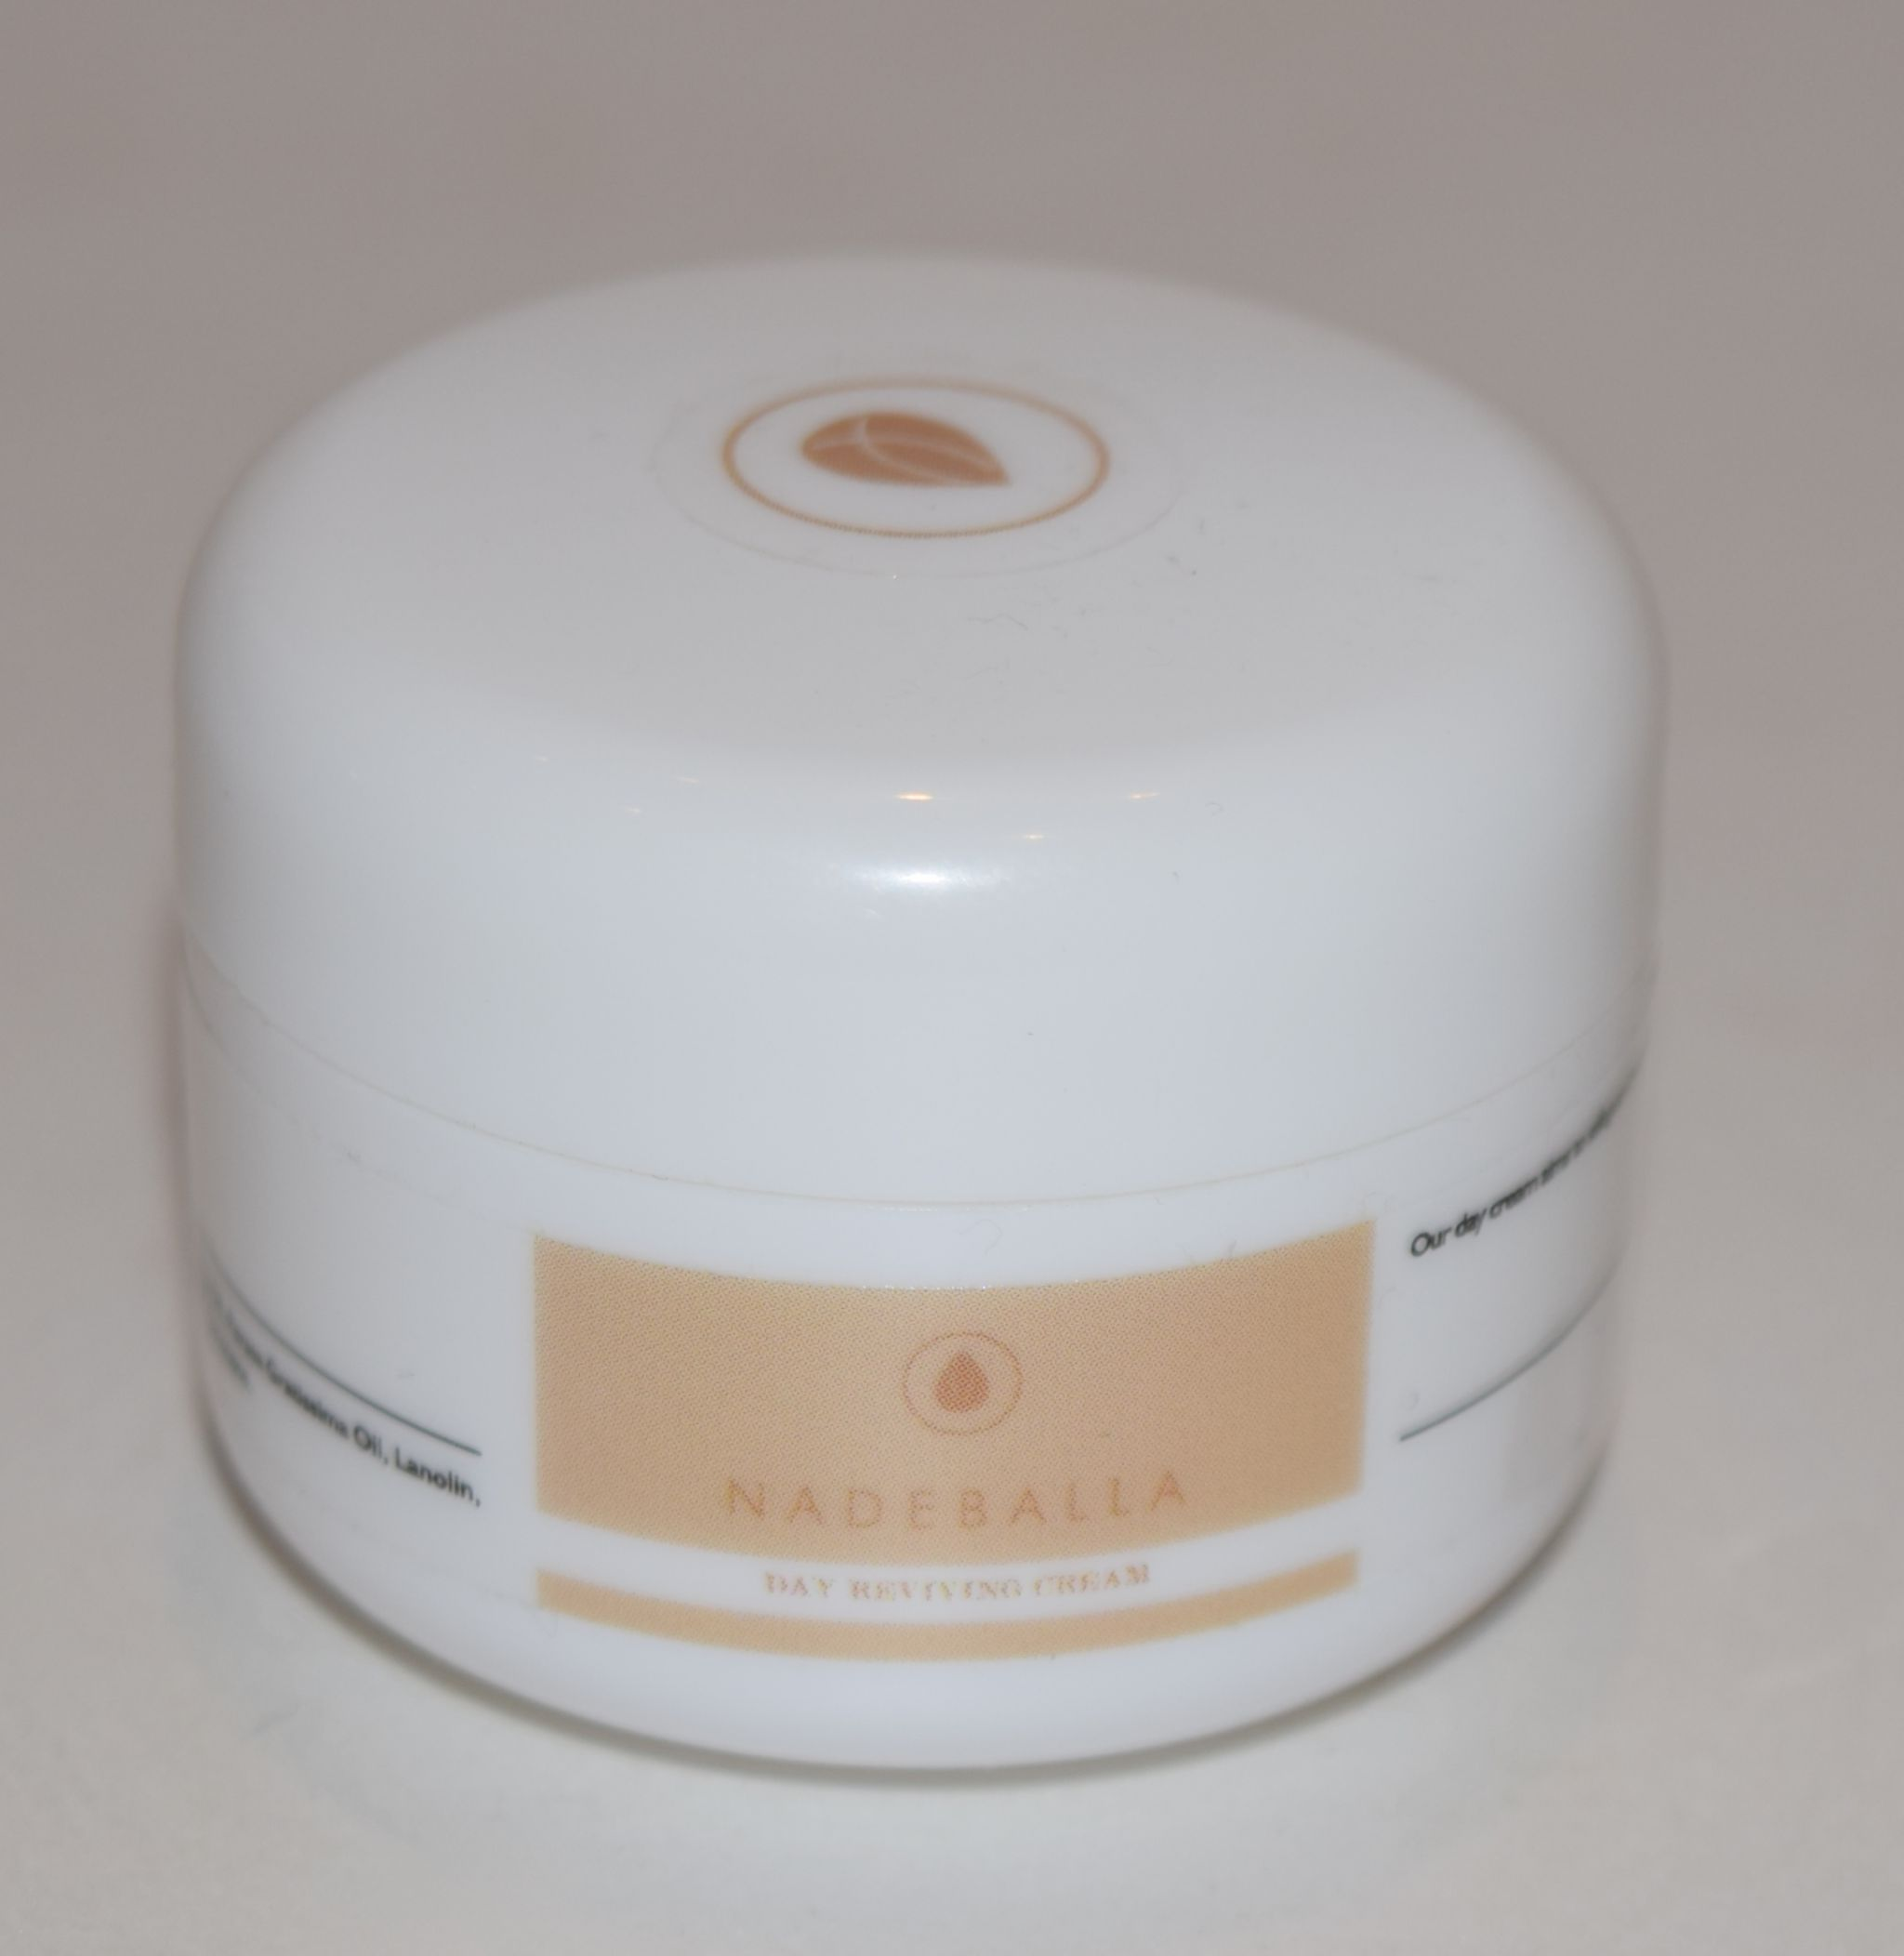 Nadebella Day Reviving Cream